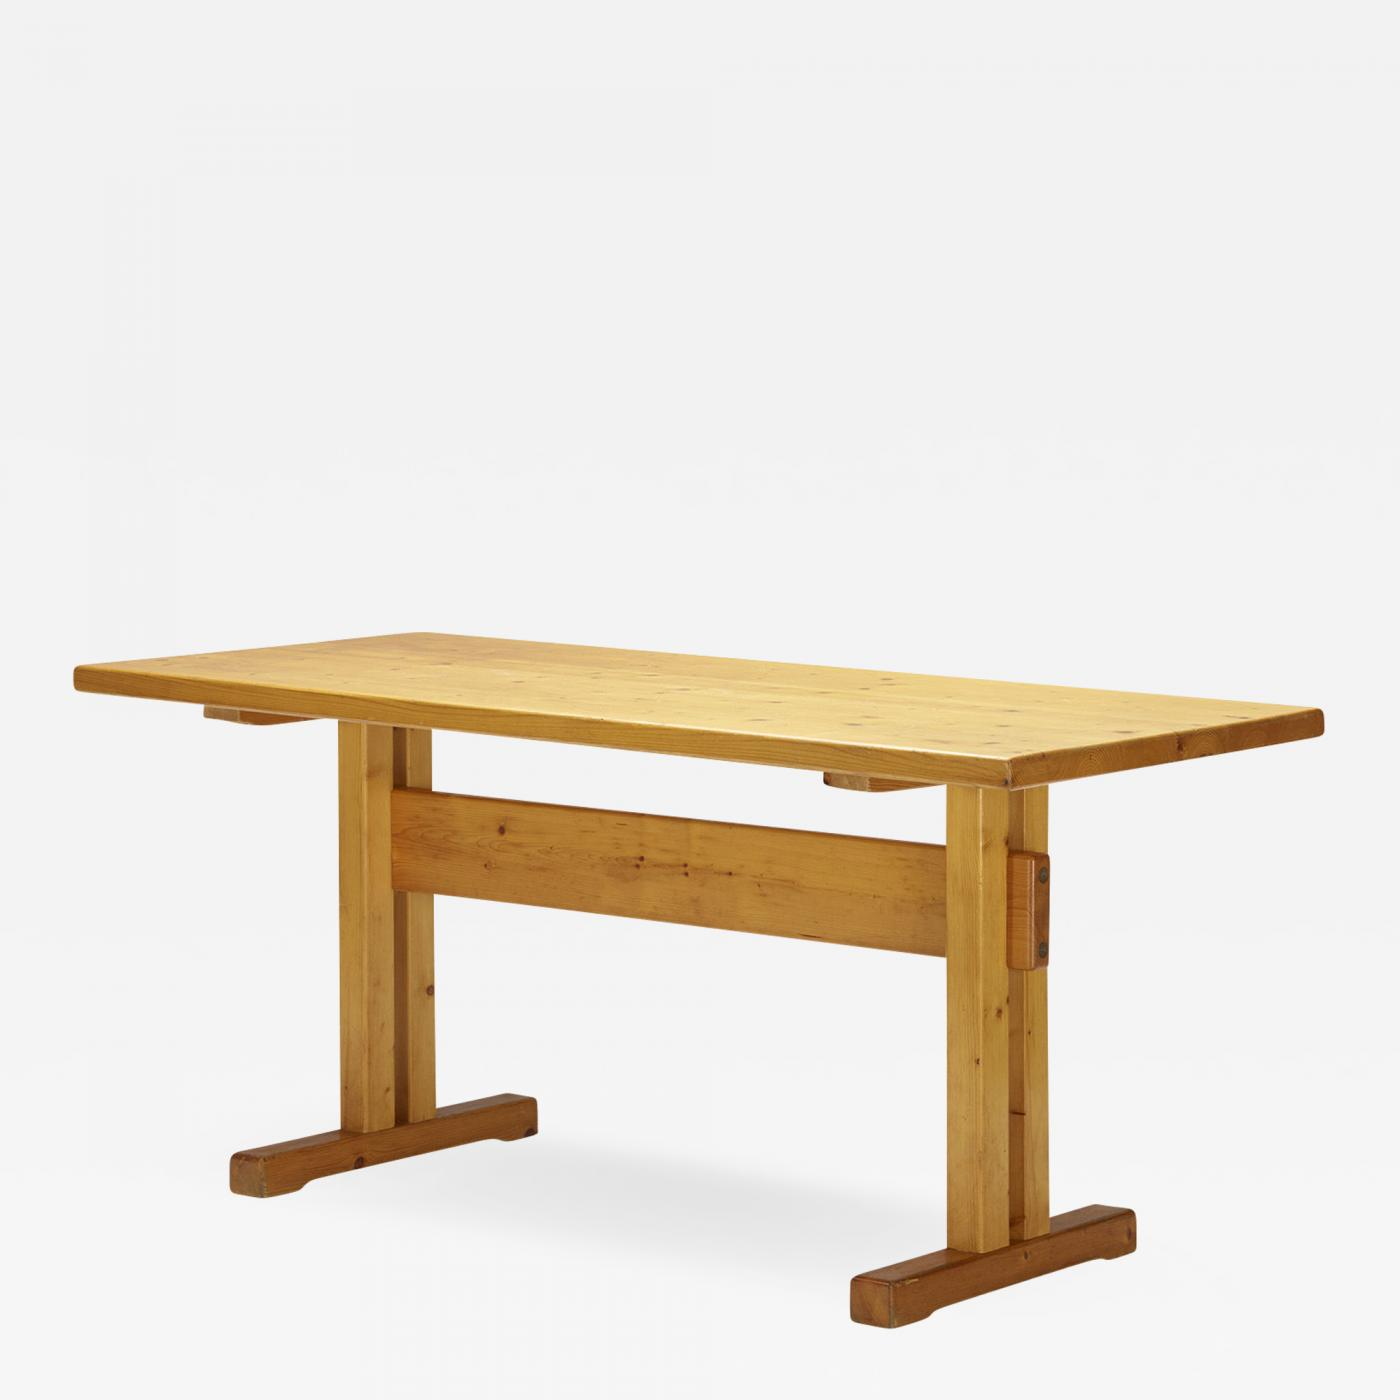 Astounding Charlotte Perriand Charlotte Perriand Dining Table From Les Arcs Savoie Ocoug Best Dining Table And Chair Ideas Images Ocougorg